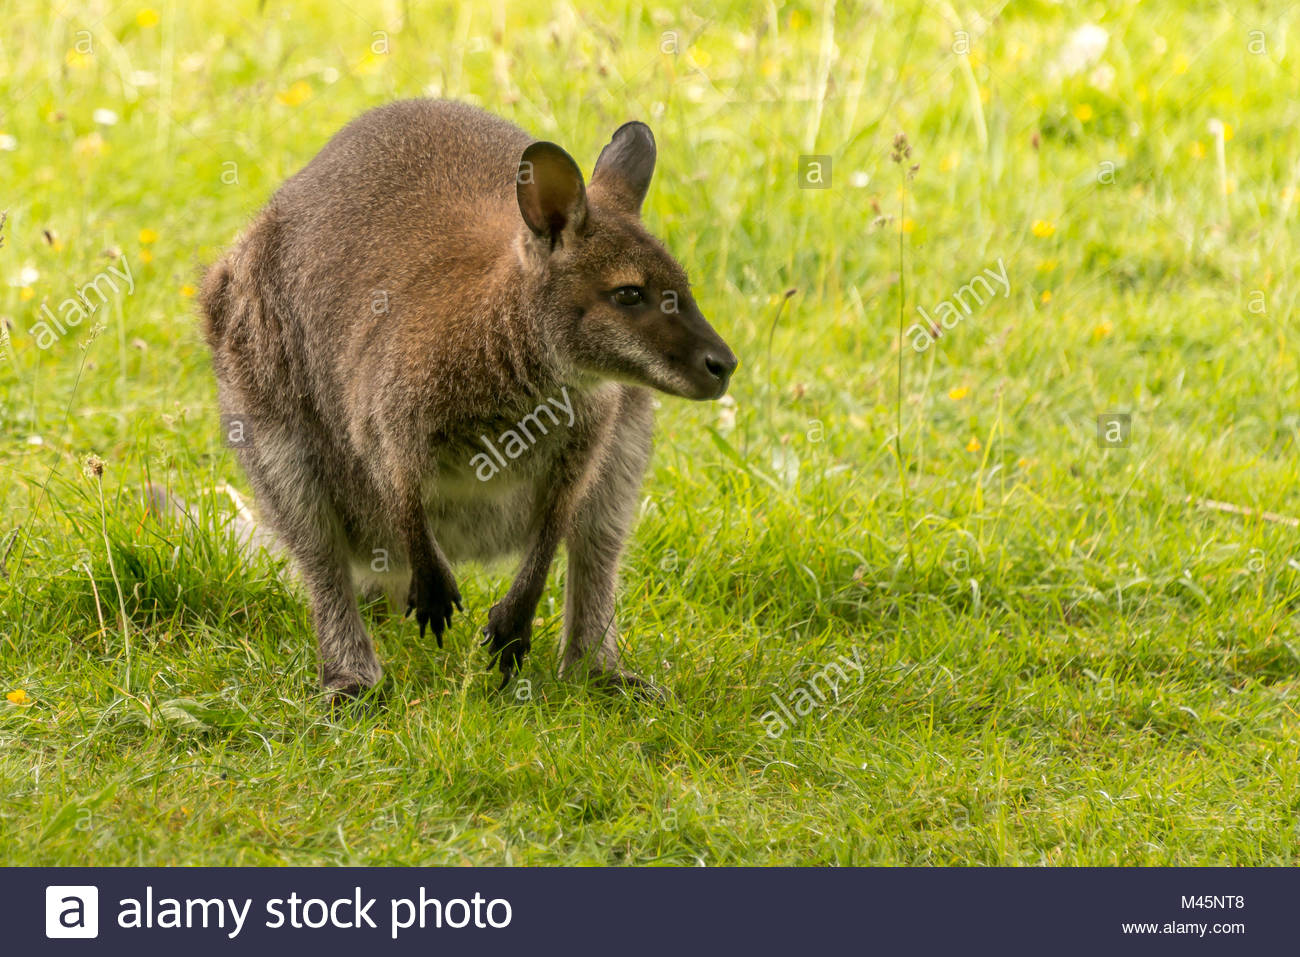 Wallaby crouched on back legs in field - Stock Image